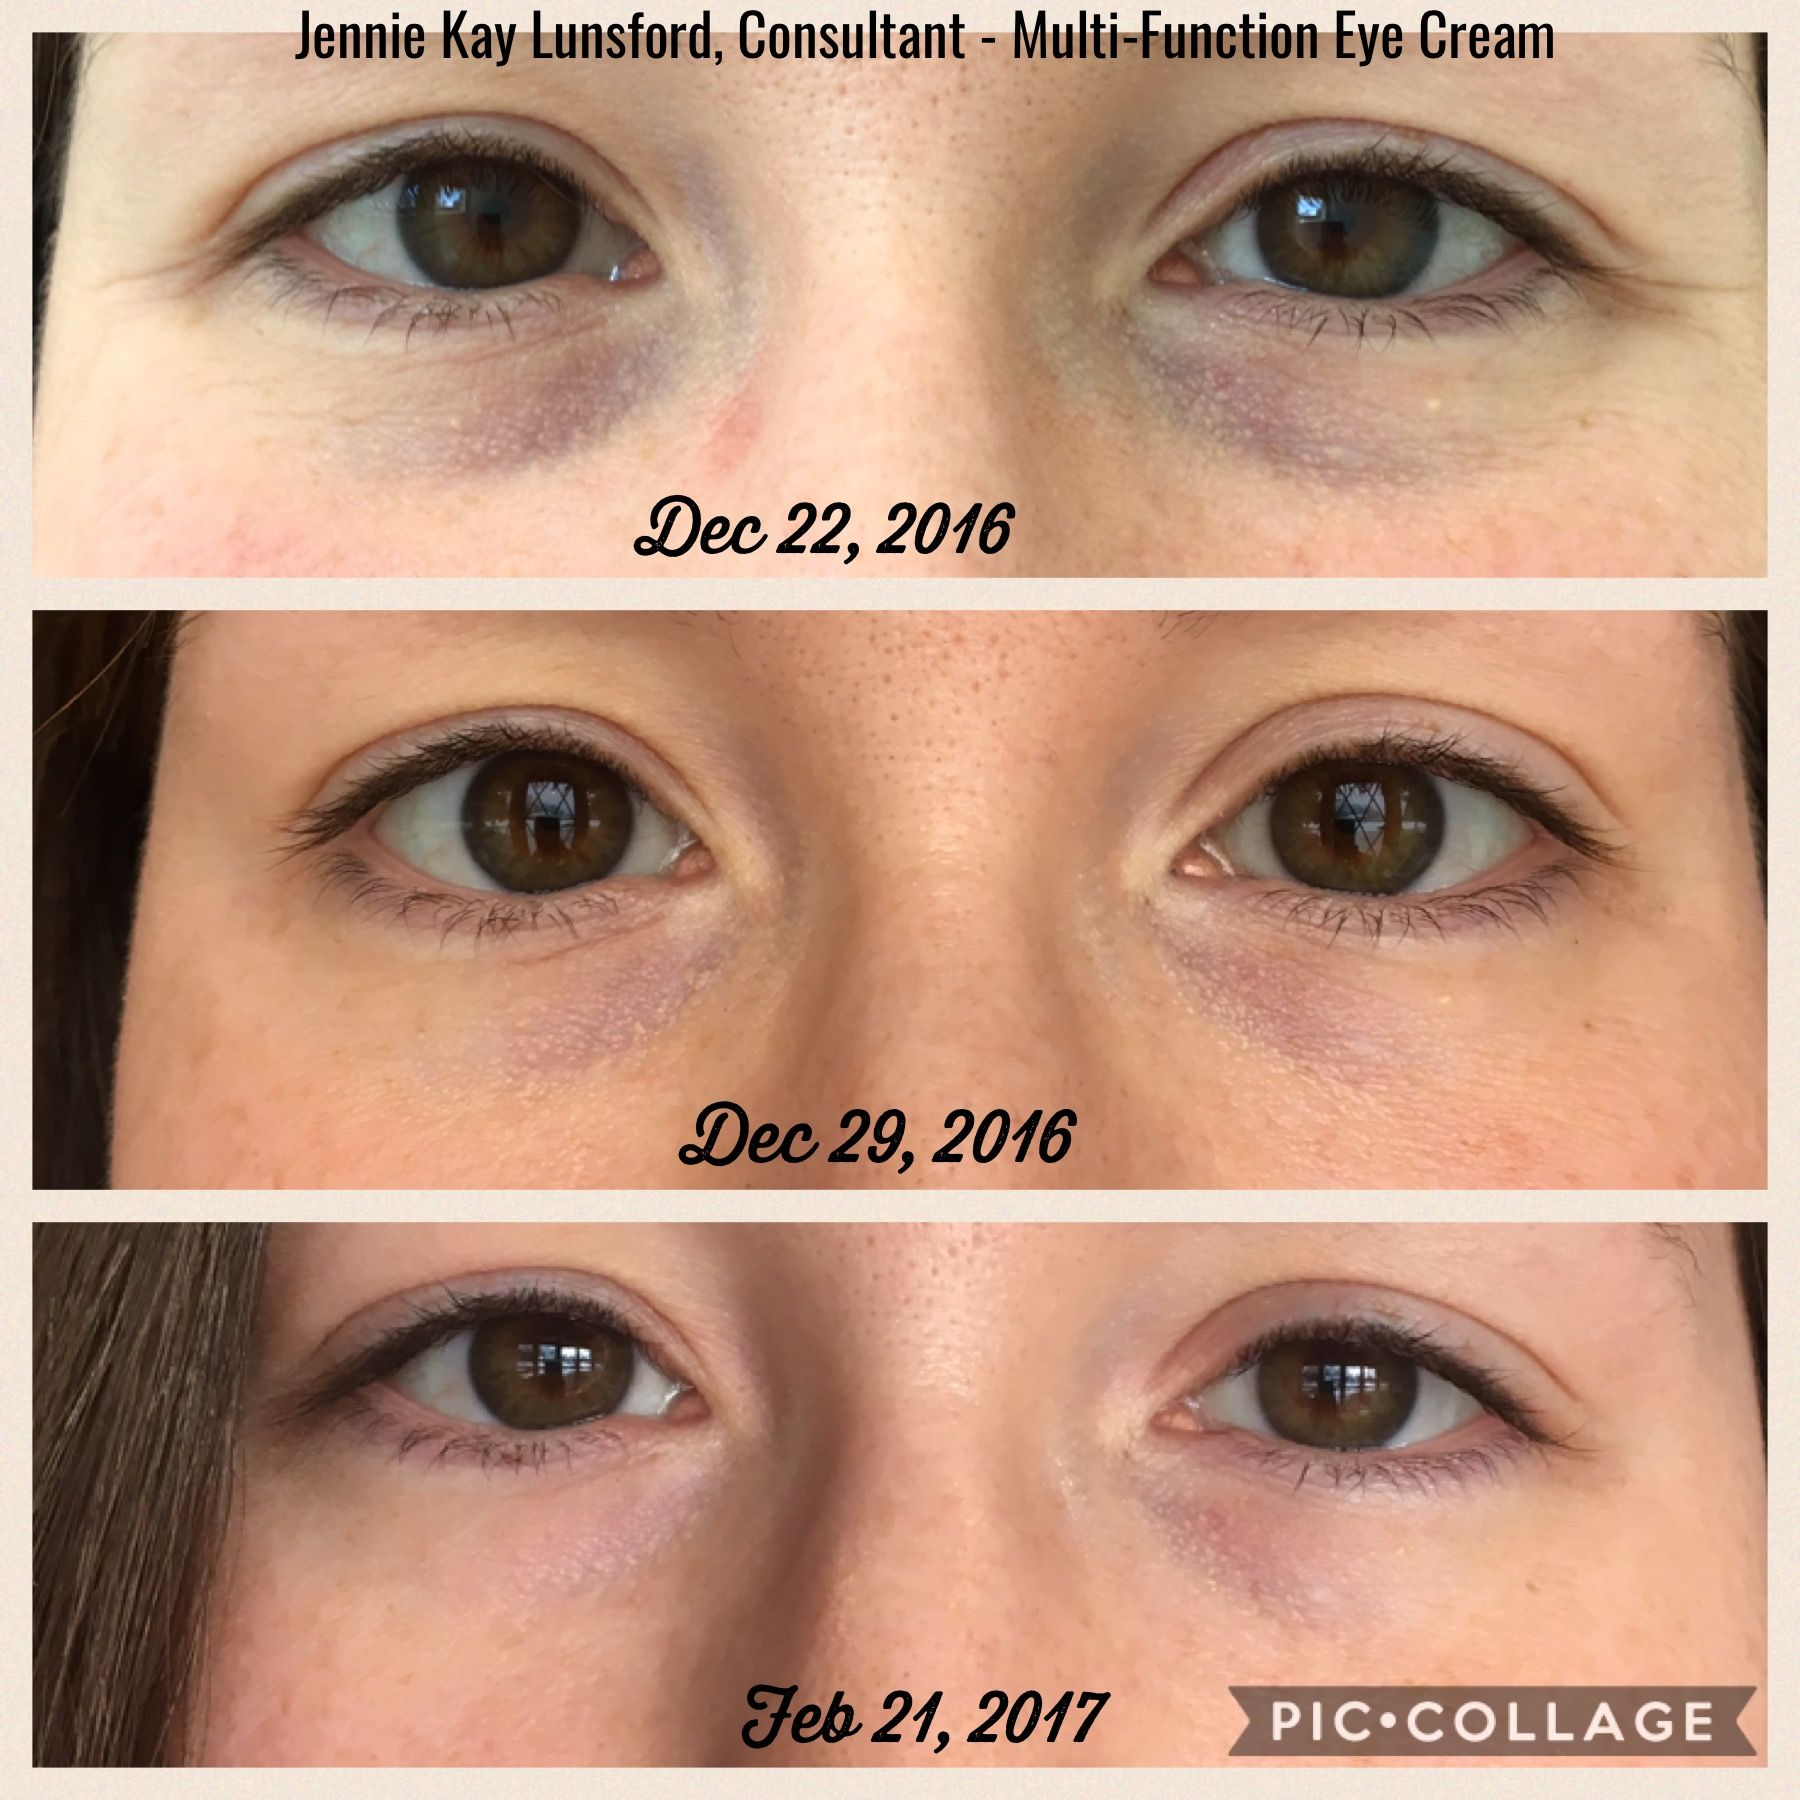 My Personal Multi Function Eye Cream Results Eye Cream Cream Eyes